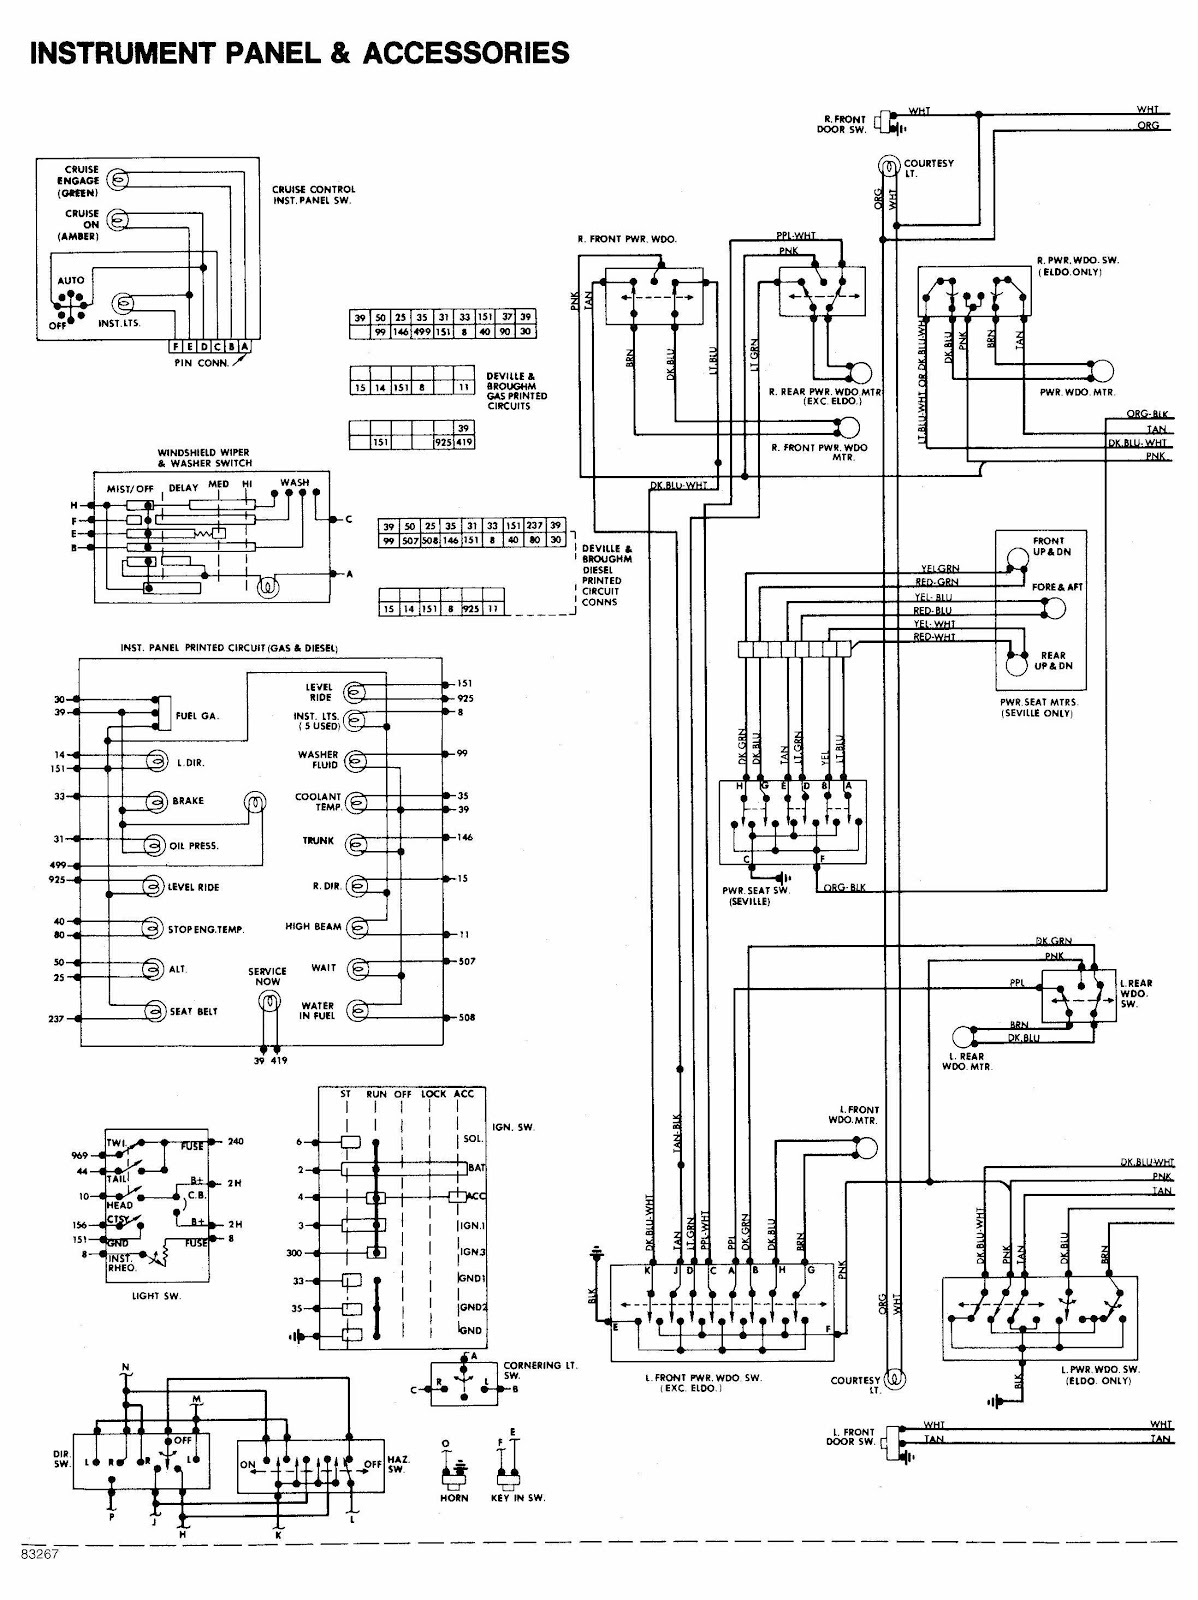 Cadillac Deville Instrument Panel And Accessories Wiring Diagram